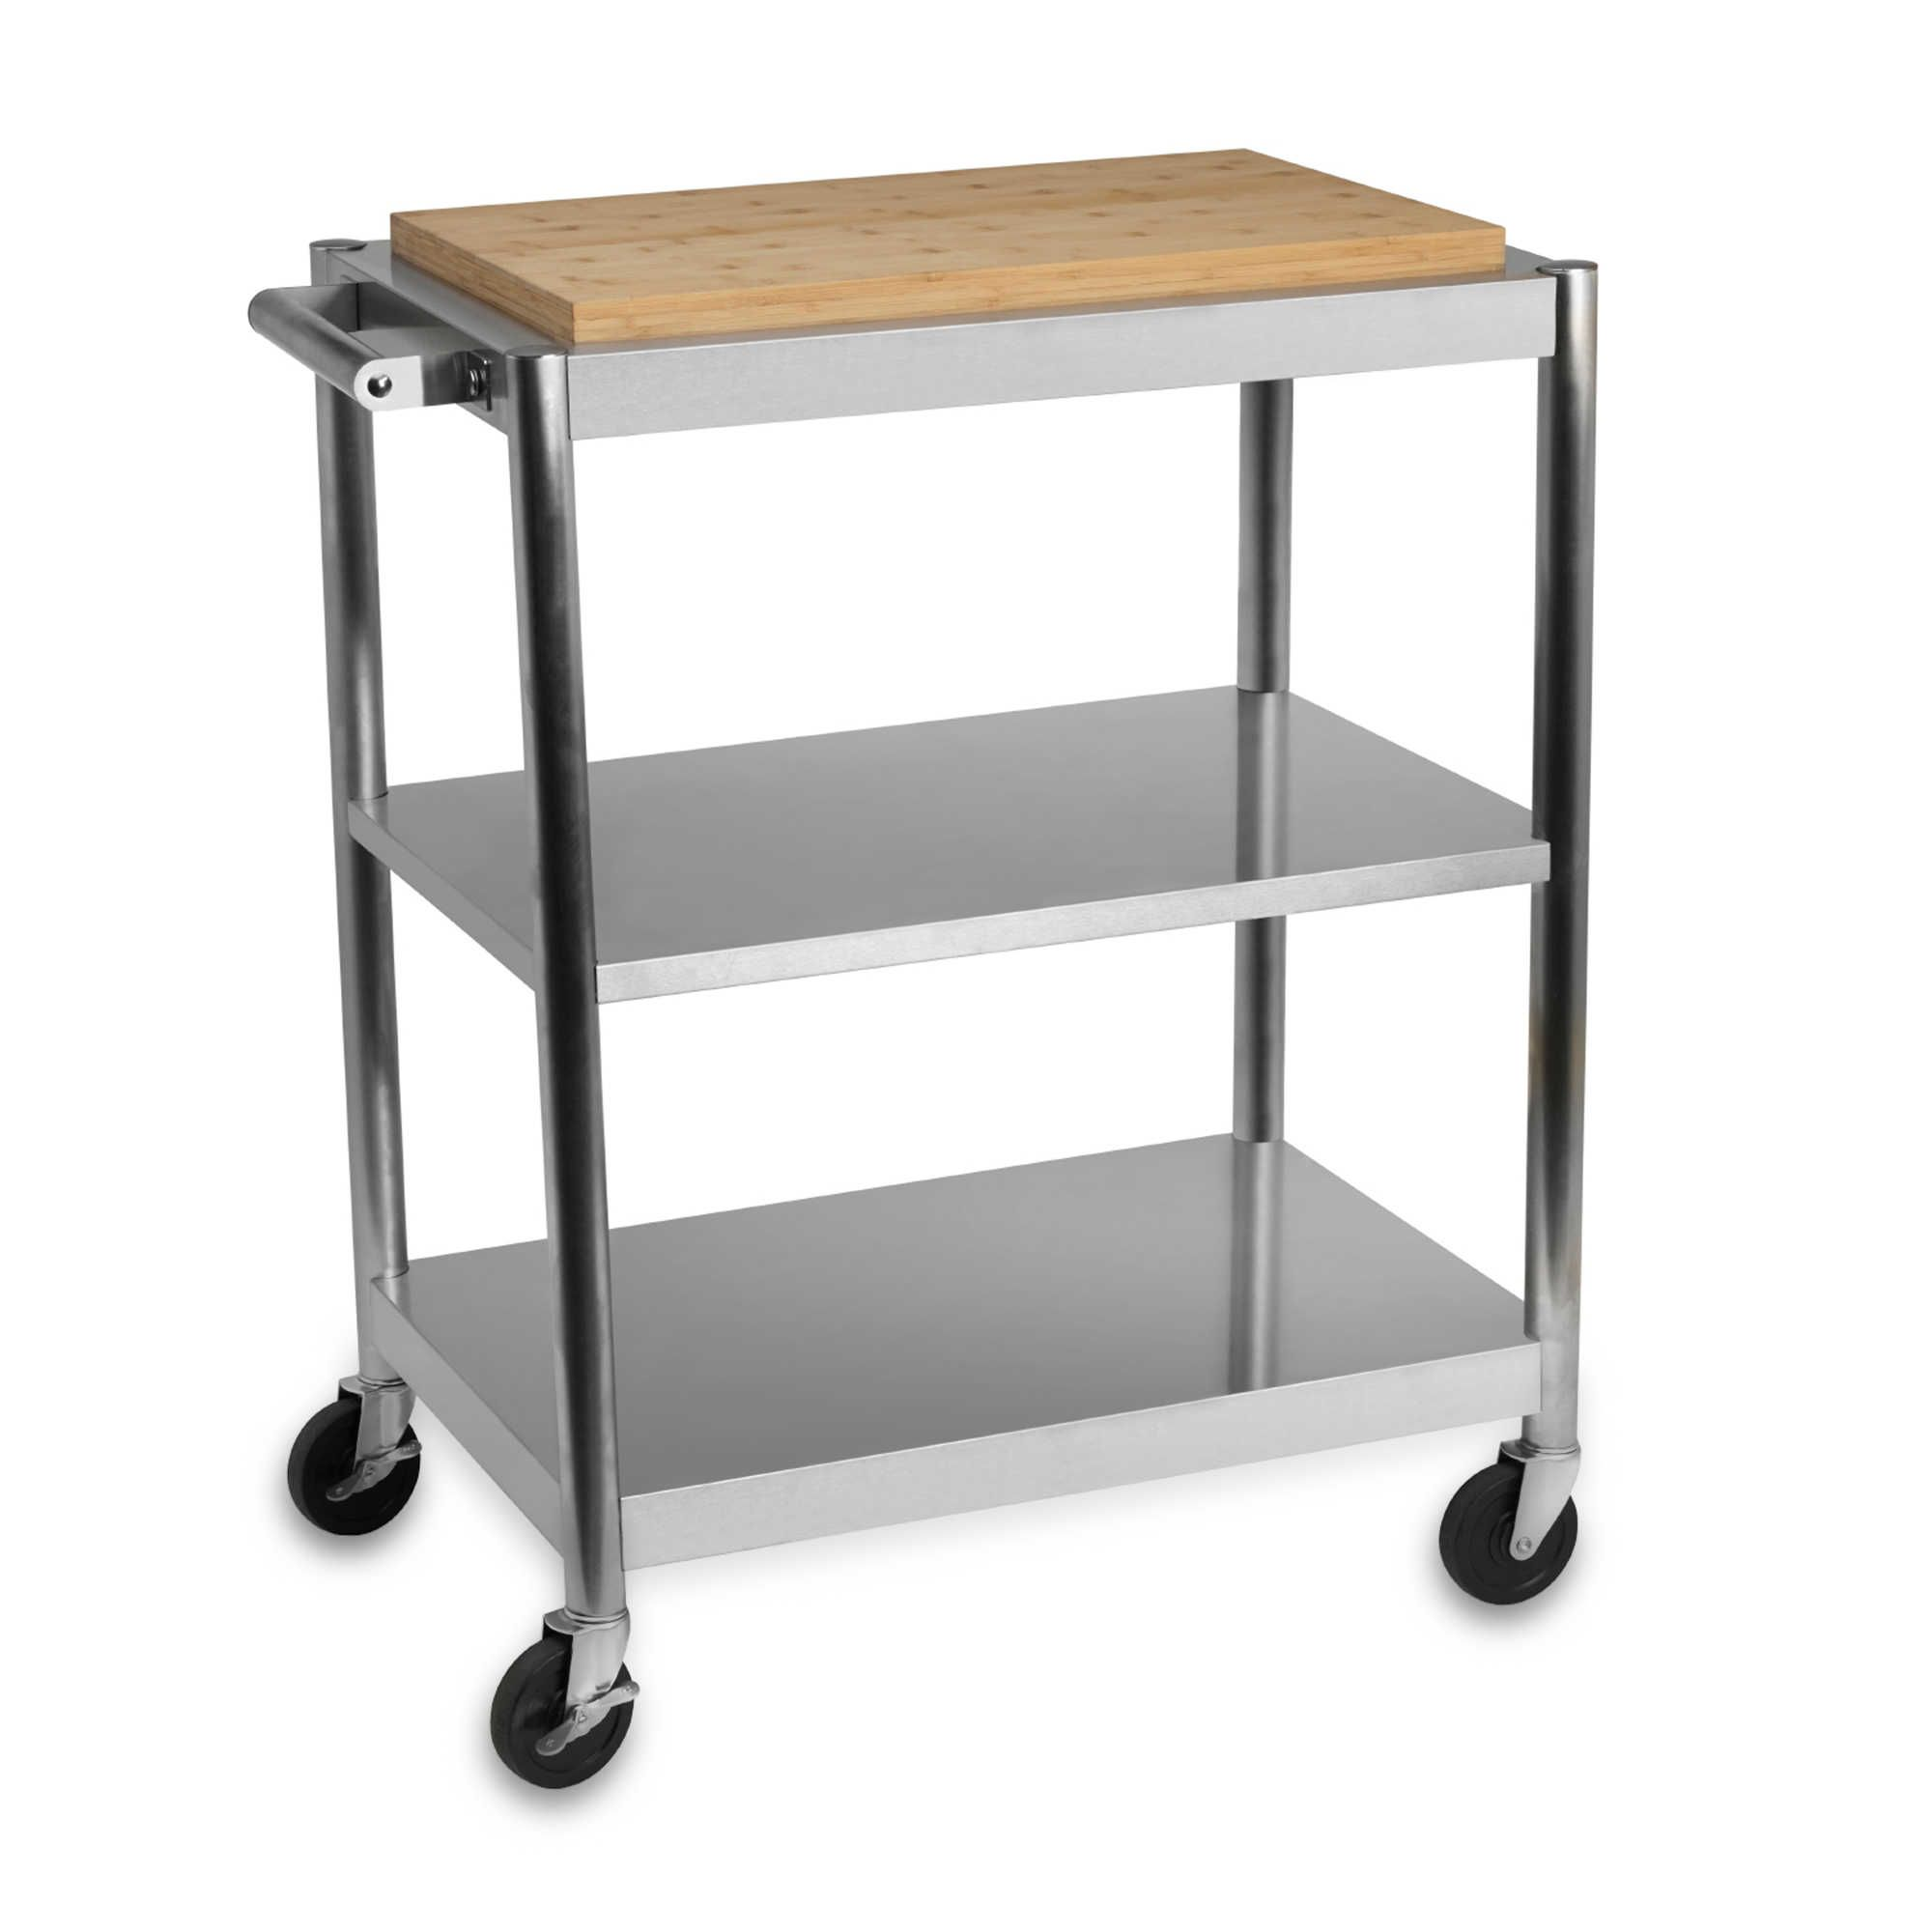 Superior International Silver Stainless Steel Rolling Kitchen Cart With Bamboo Top